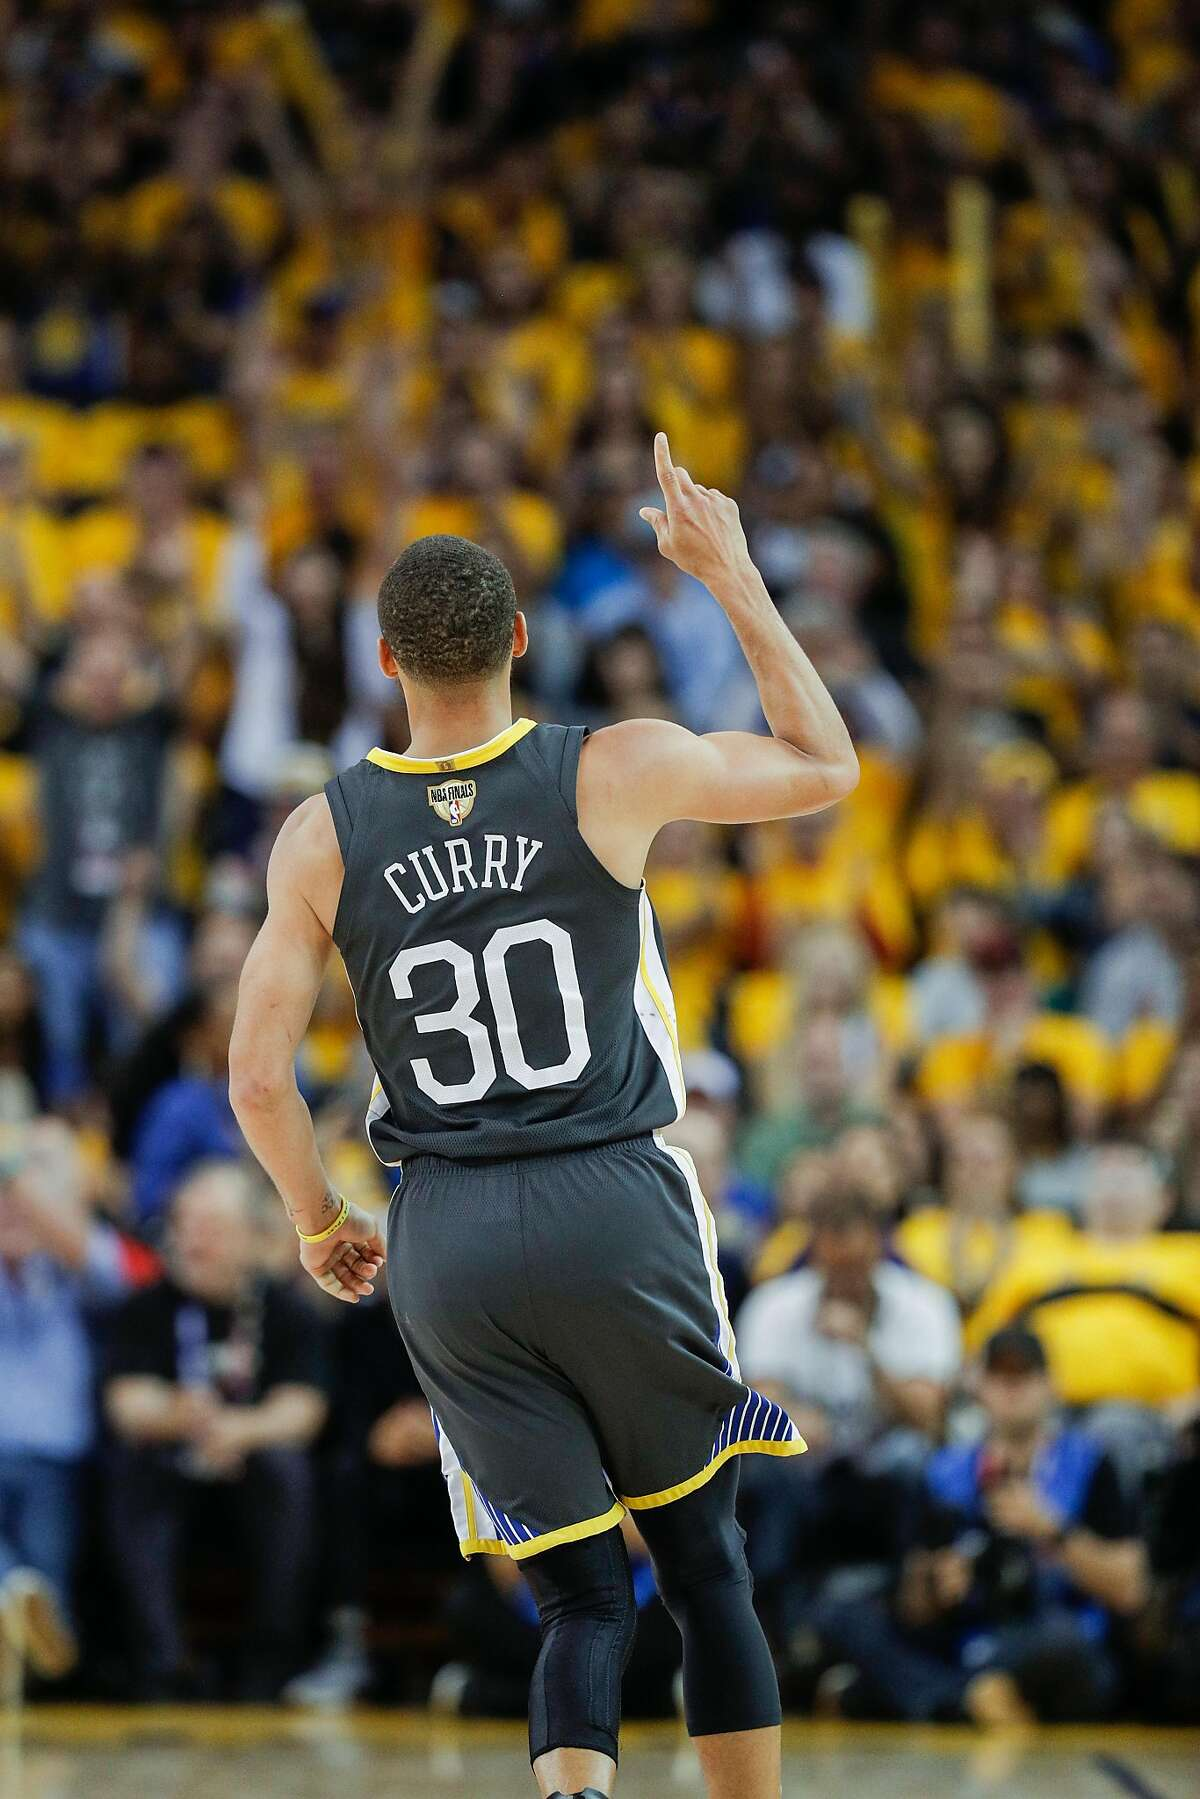 Golden State Warriors' Stephen Curry reacts after scoring in the fourth quarter during game 2 of The NBA Finals between the Golden State Warriors and the Cleveland Cavaliers at Oracle Arena on Sunday, June 3, 2018 in Oakland, Calif.